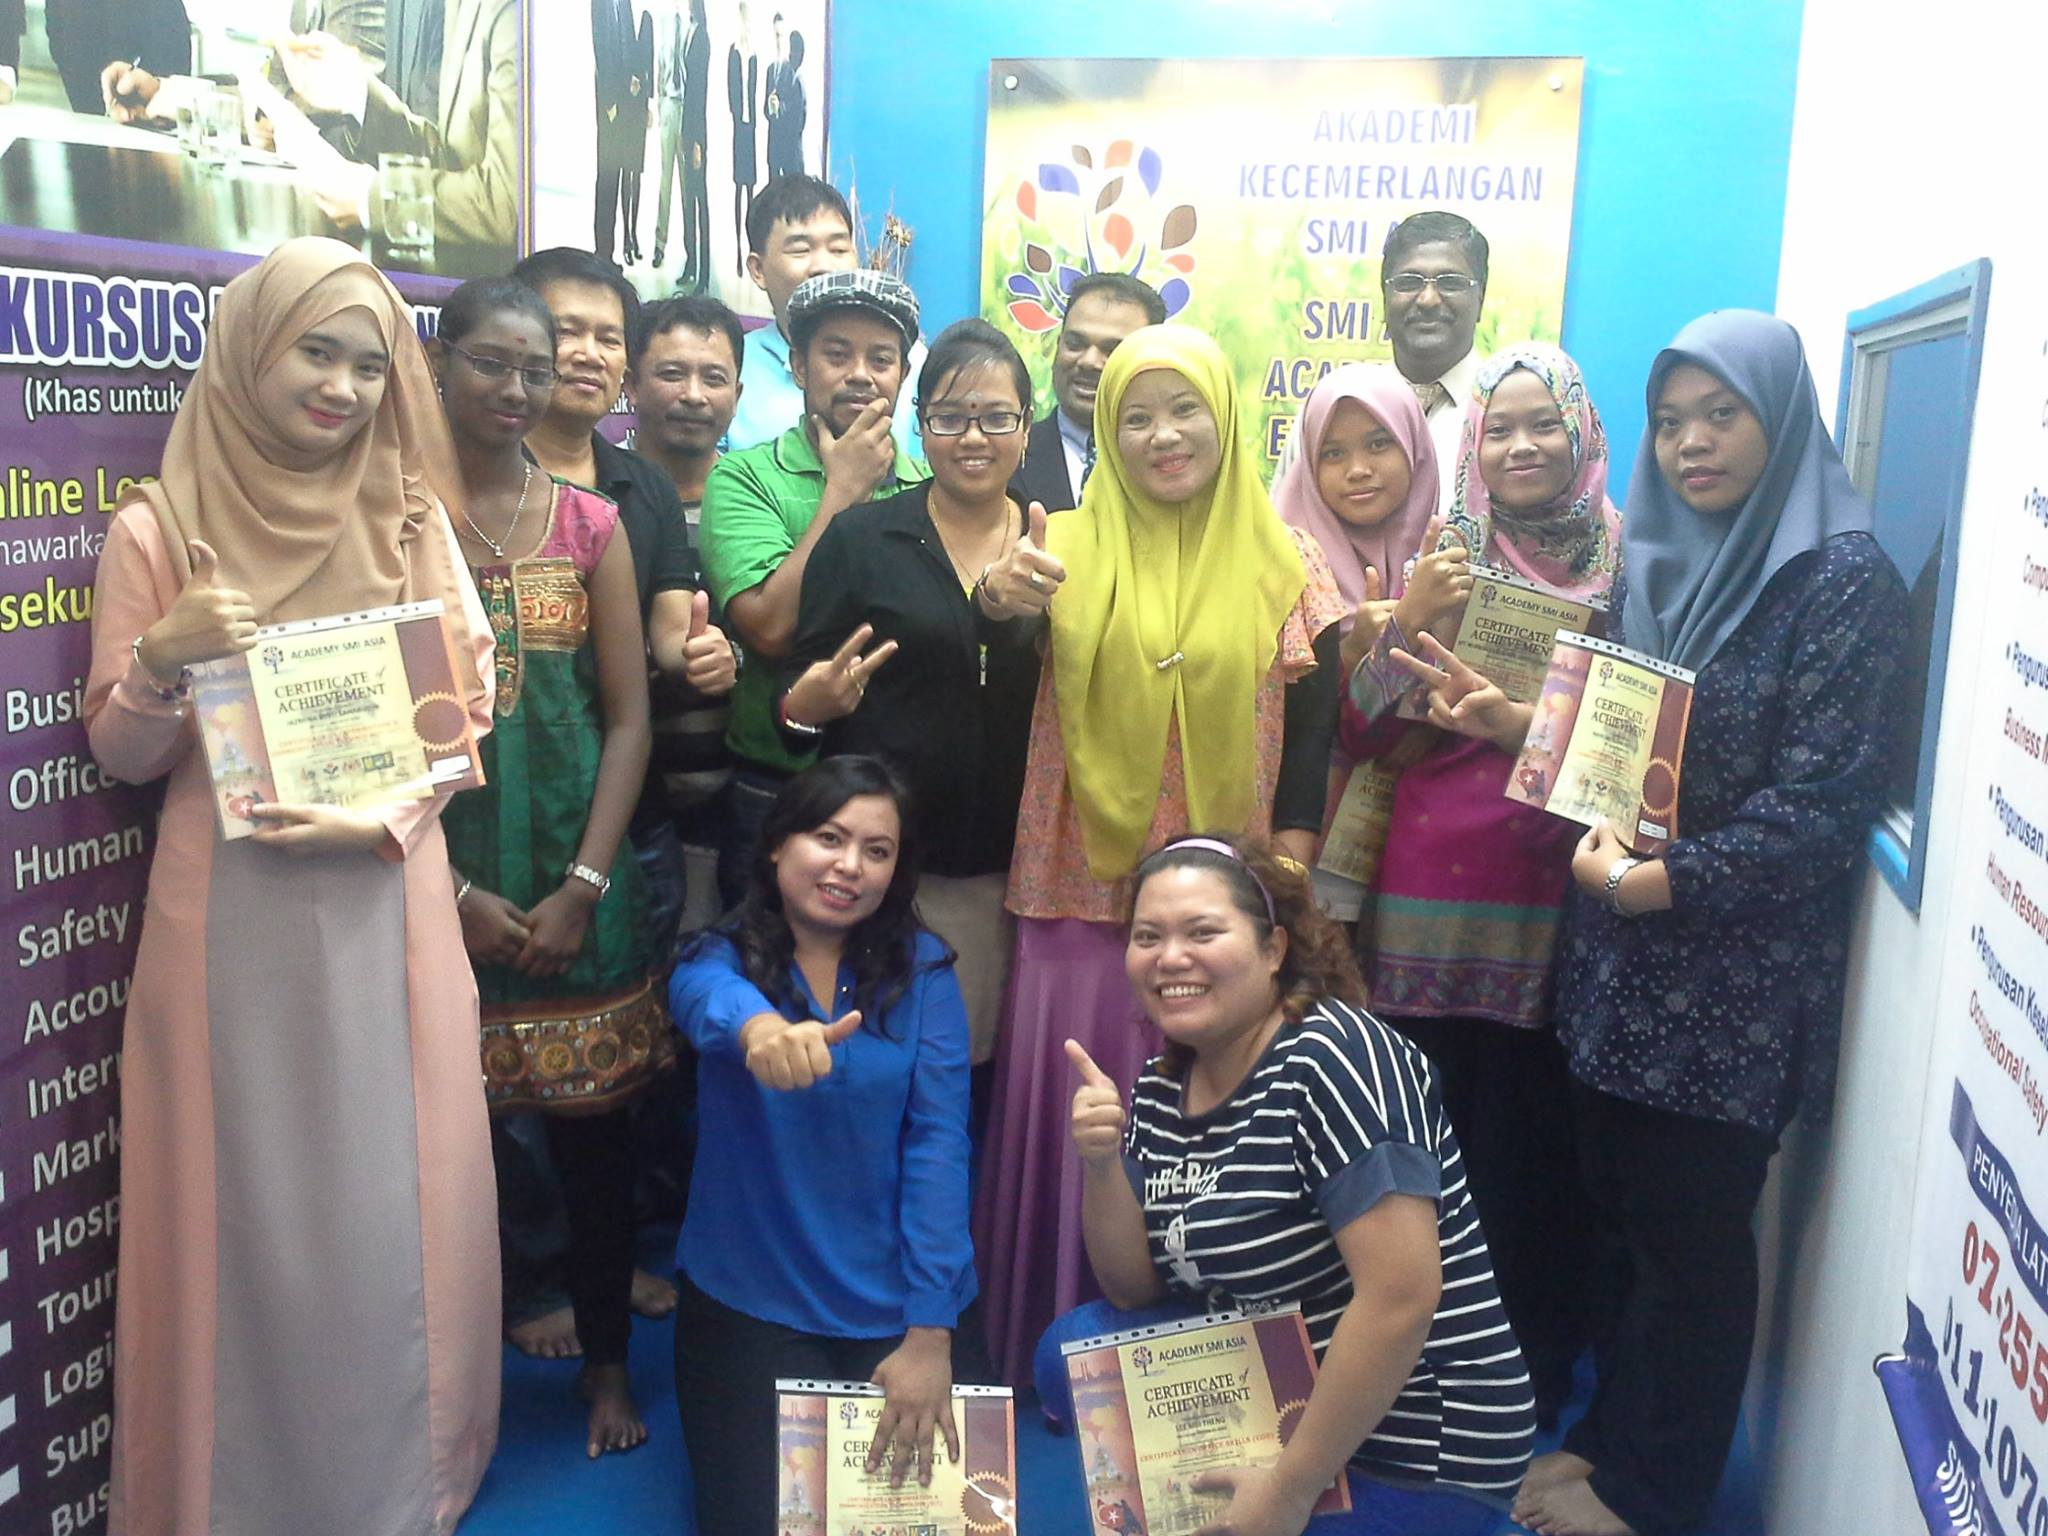 SMI Asia Academy of Excellence